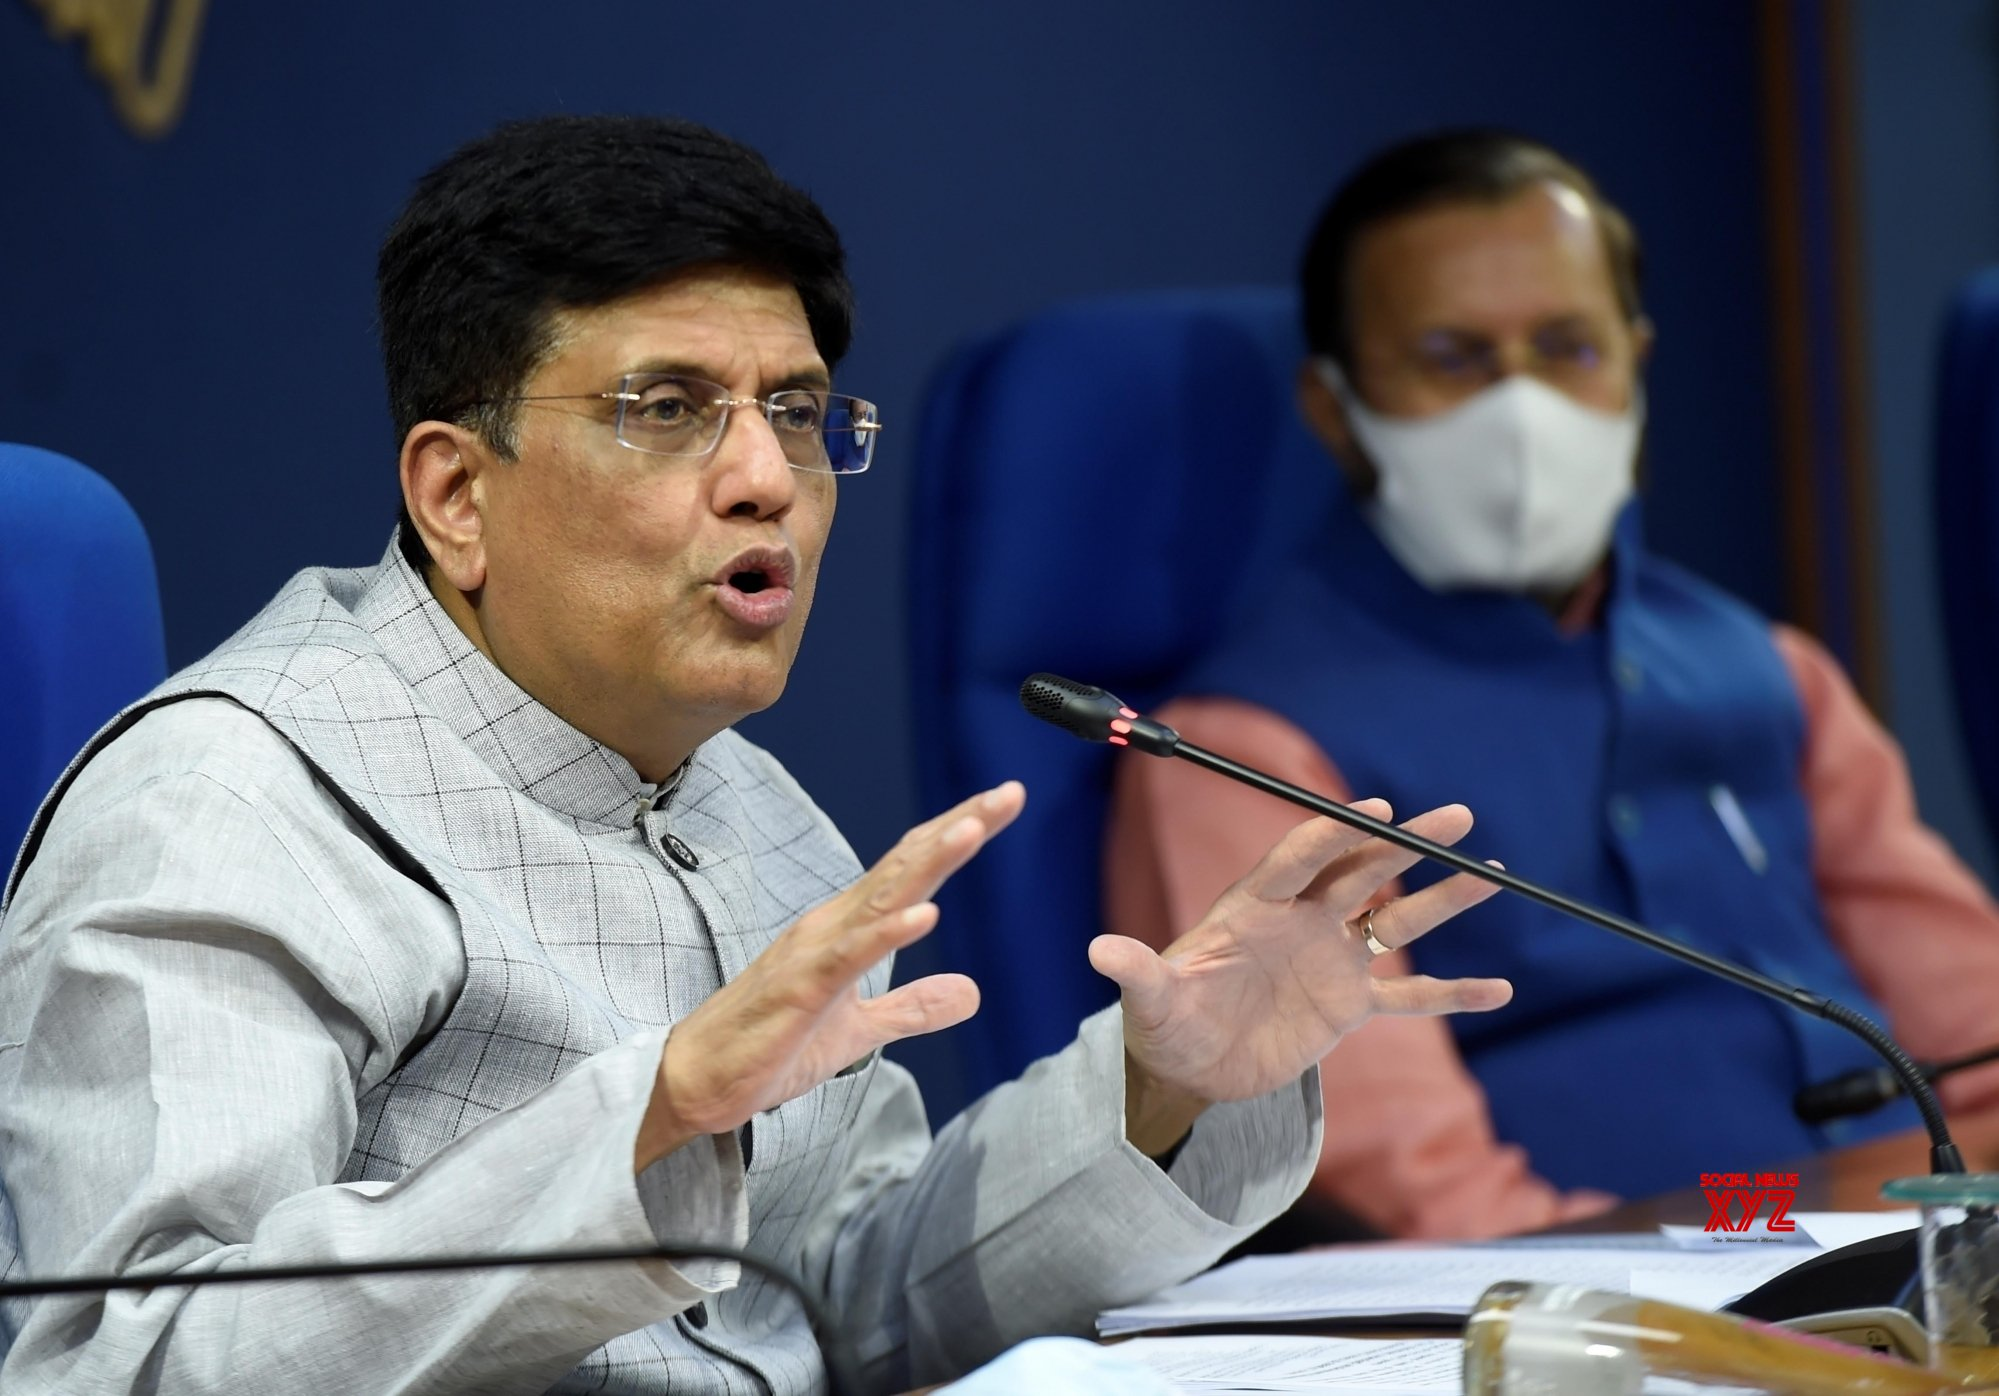 New Delhi: Union Railways Minister Piyush Goyal addresses a press conference on cabinet decisions, in New Delhi, Wednesday, April 7, 2021. #Gallery